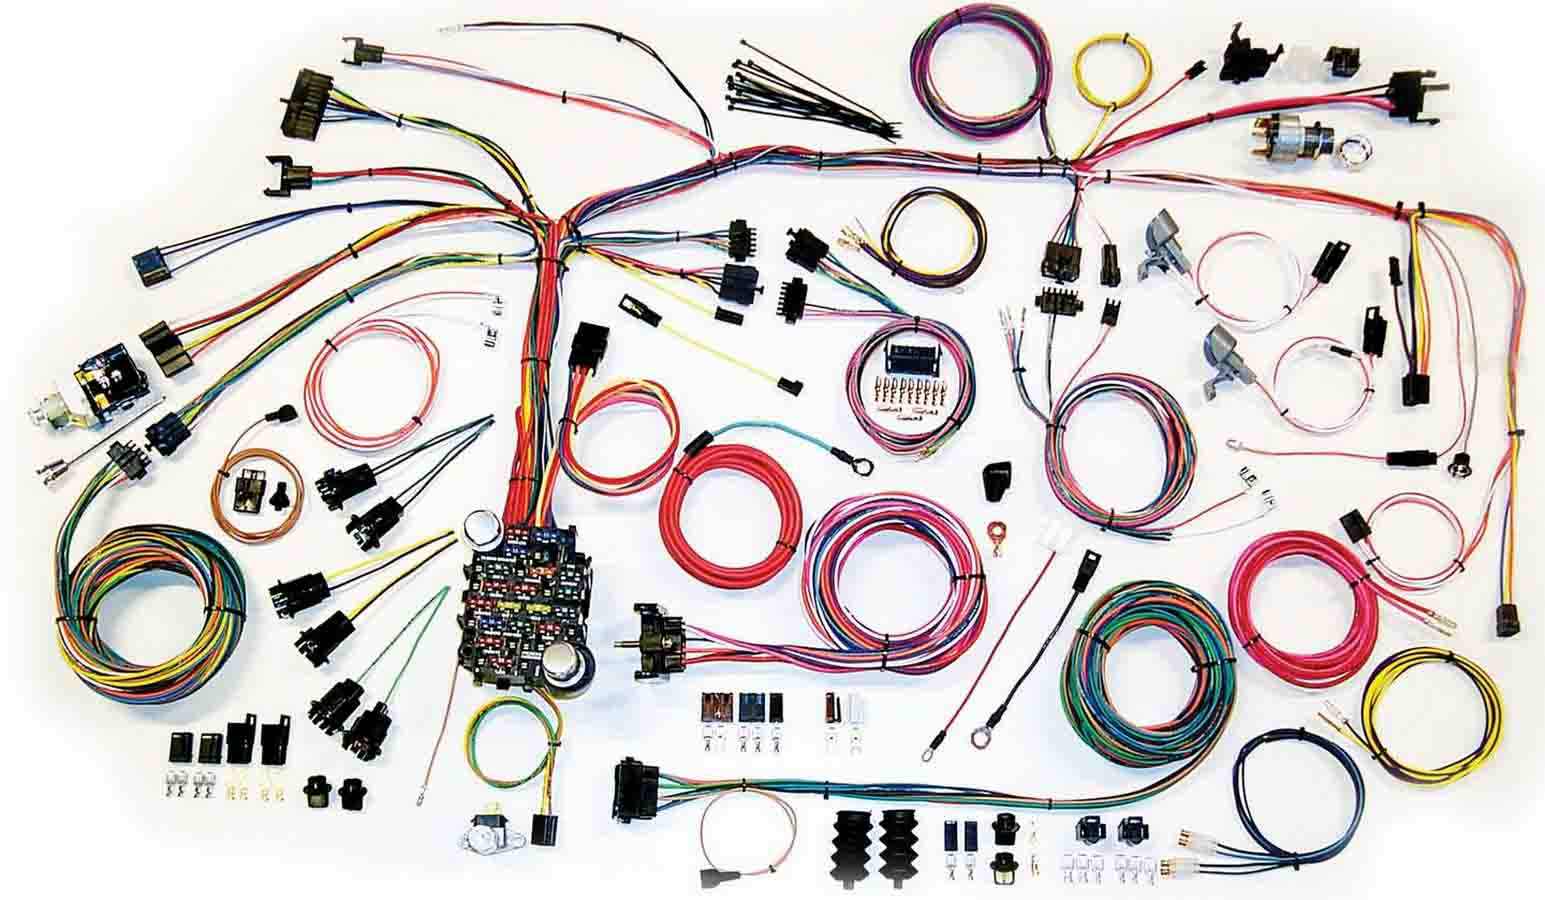 hight resolution of 67 68 camaro wire harnes system